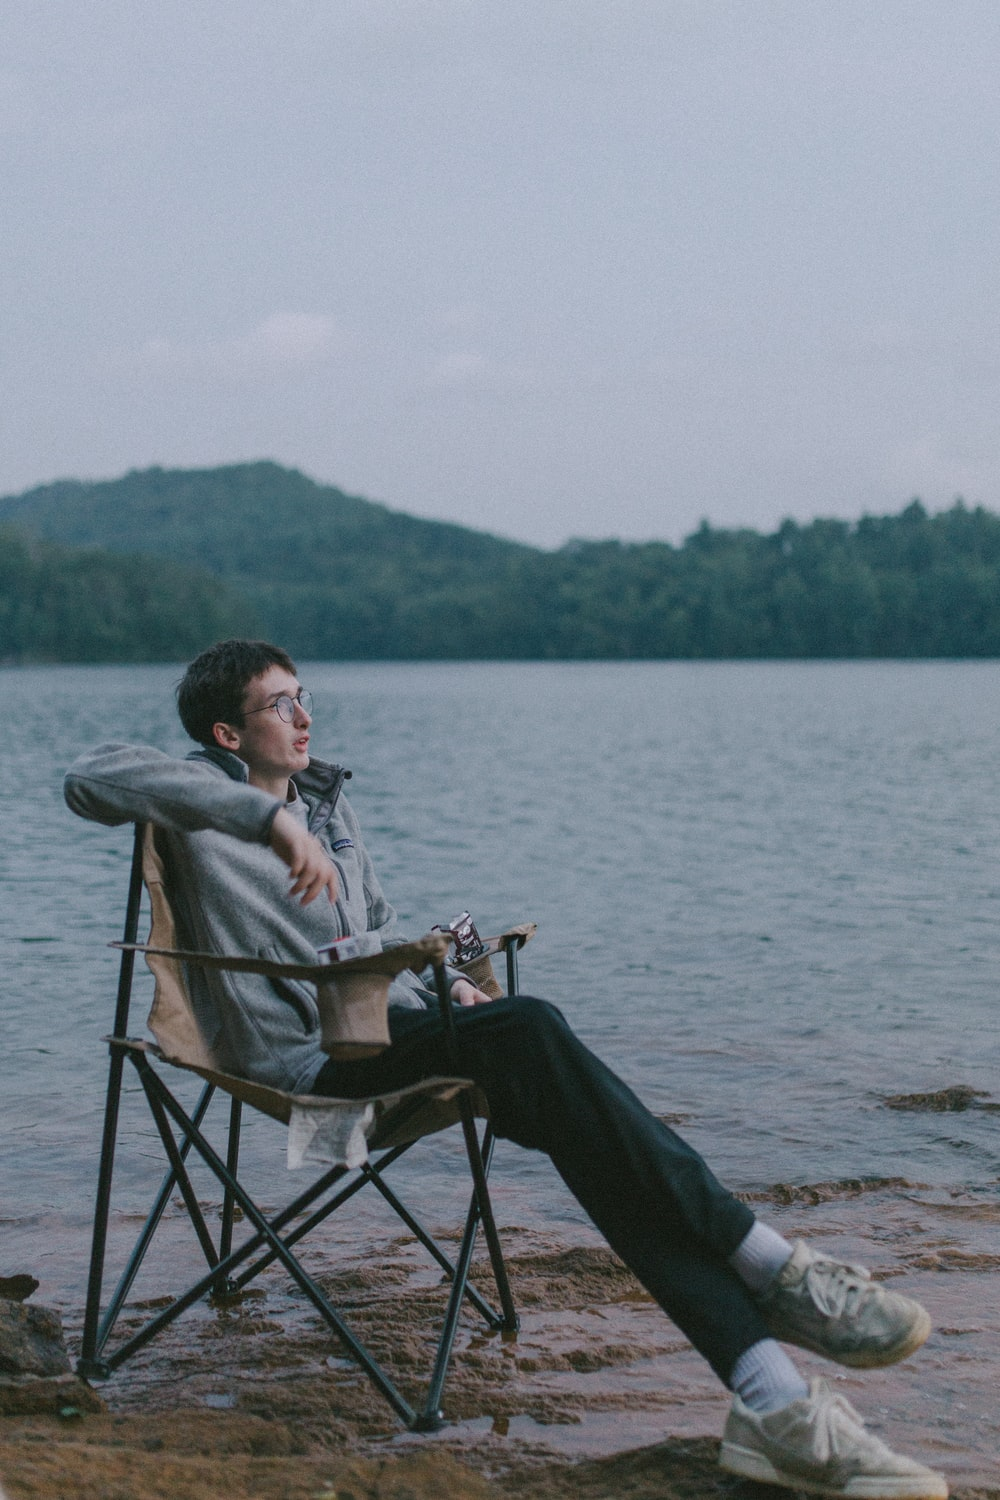 man in gray jacket sitting on black chair near body of water during daytime